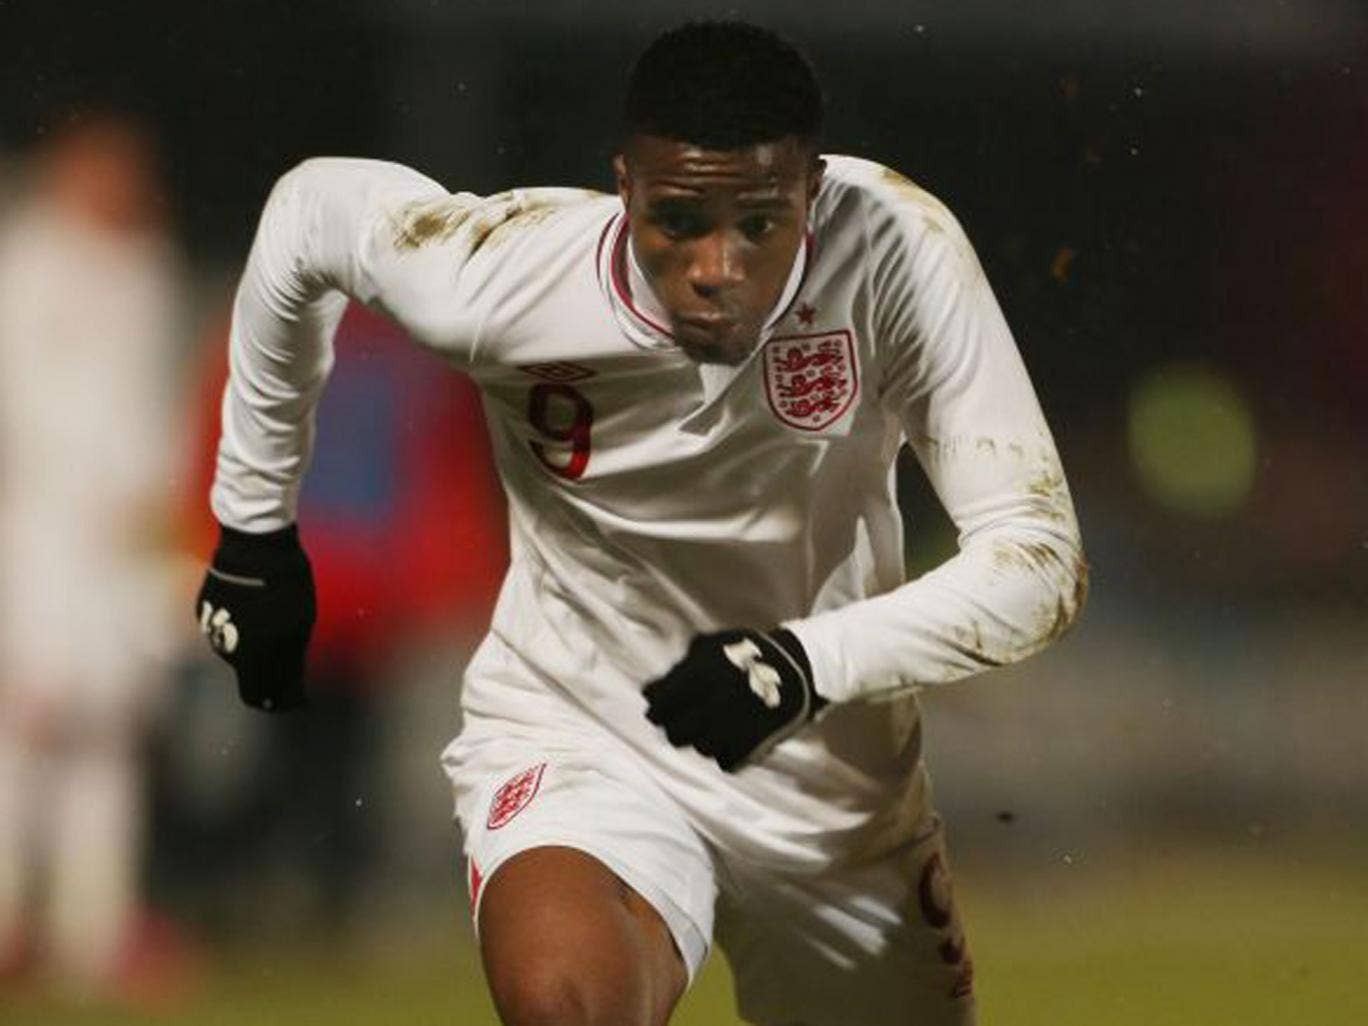 Wilfried Zaha scored his first goal for England Under-21